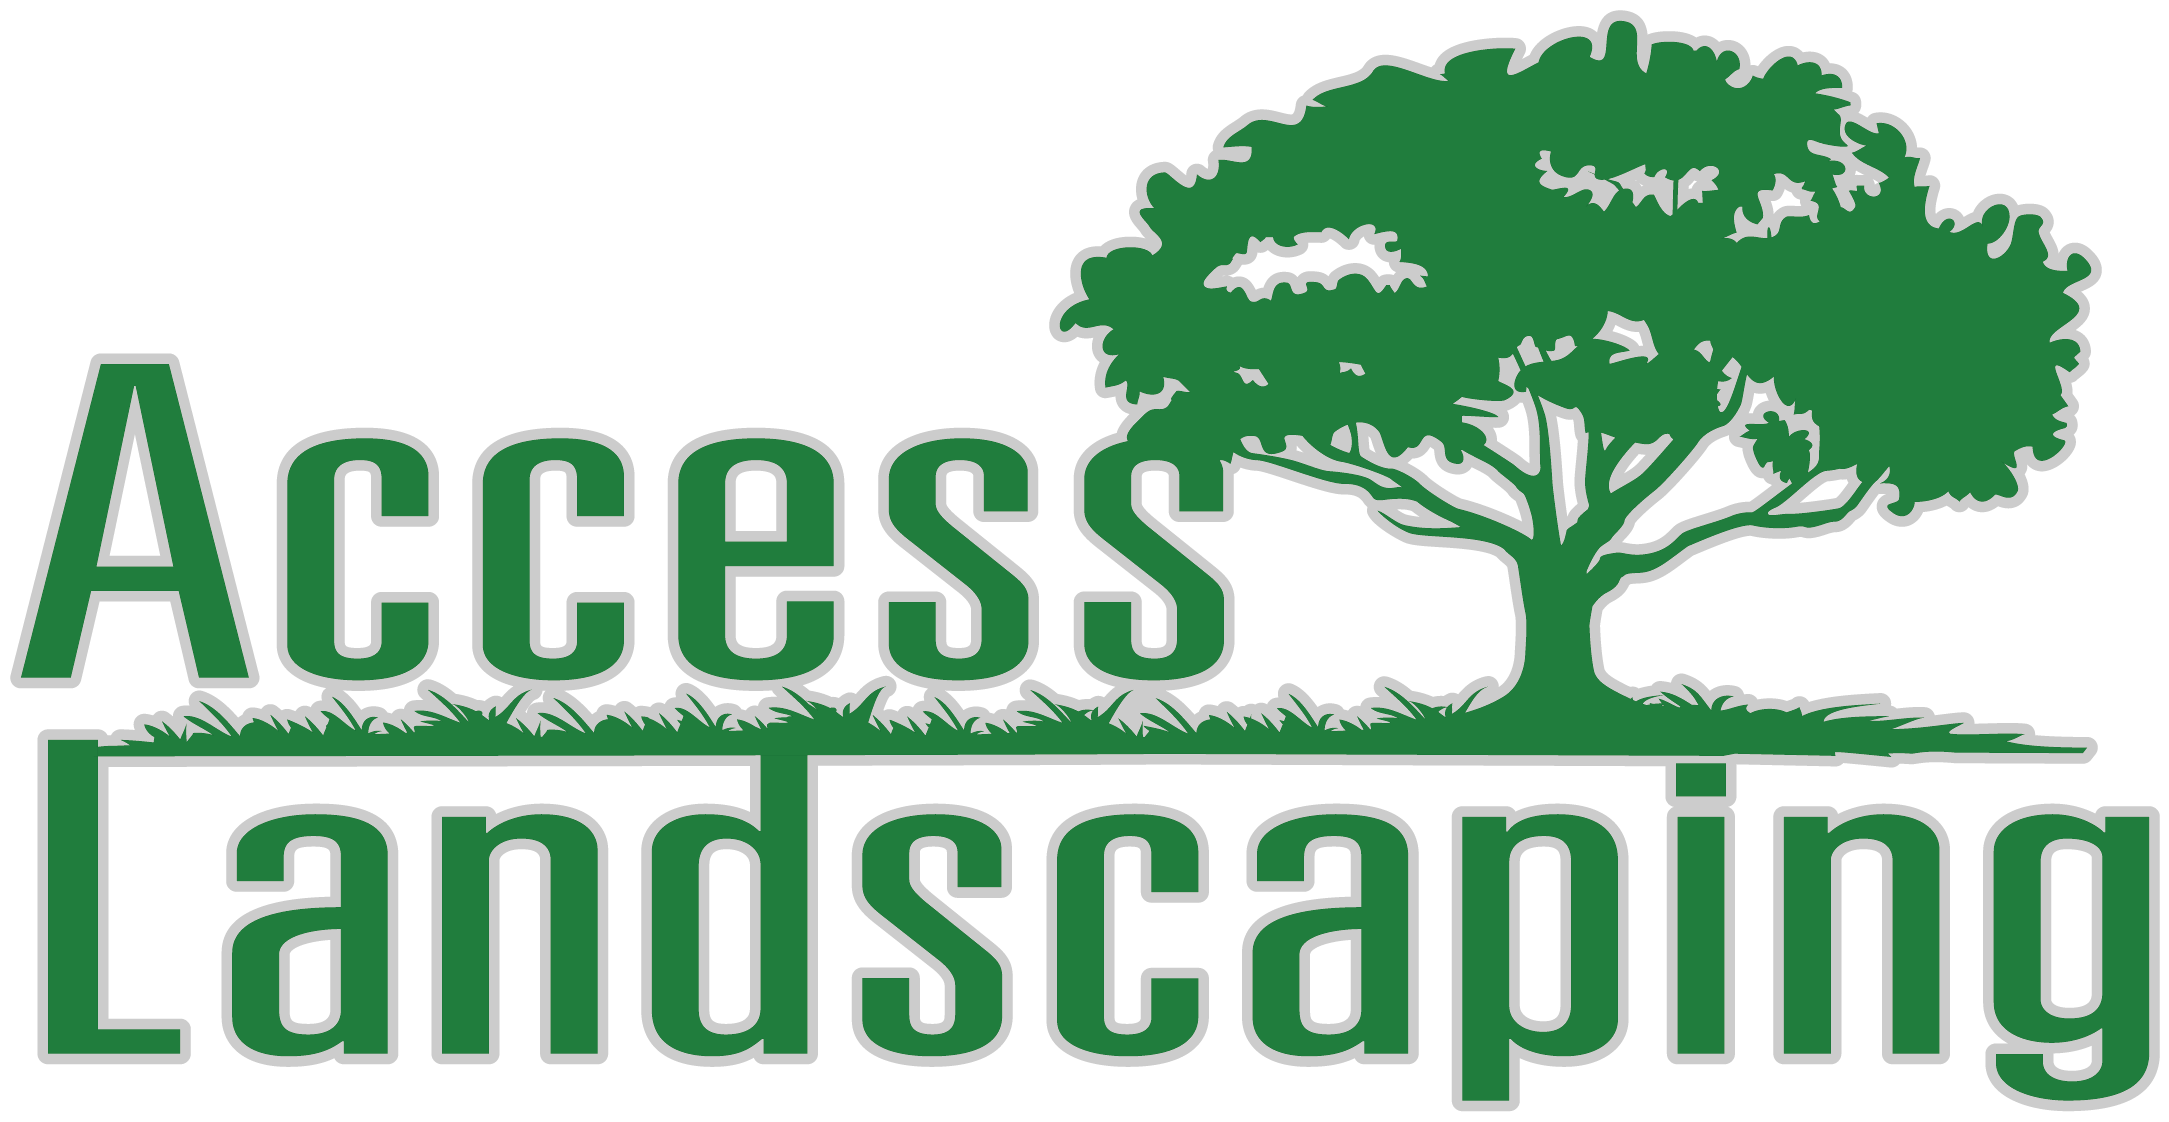 Exciting-Lawn-Care-Business-Logo-Ideas-72-For-Your-Google-Logo-History-with-Lawn-Care-Business-Logo-Ideas.jpg.png